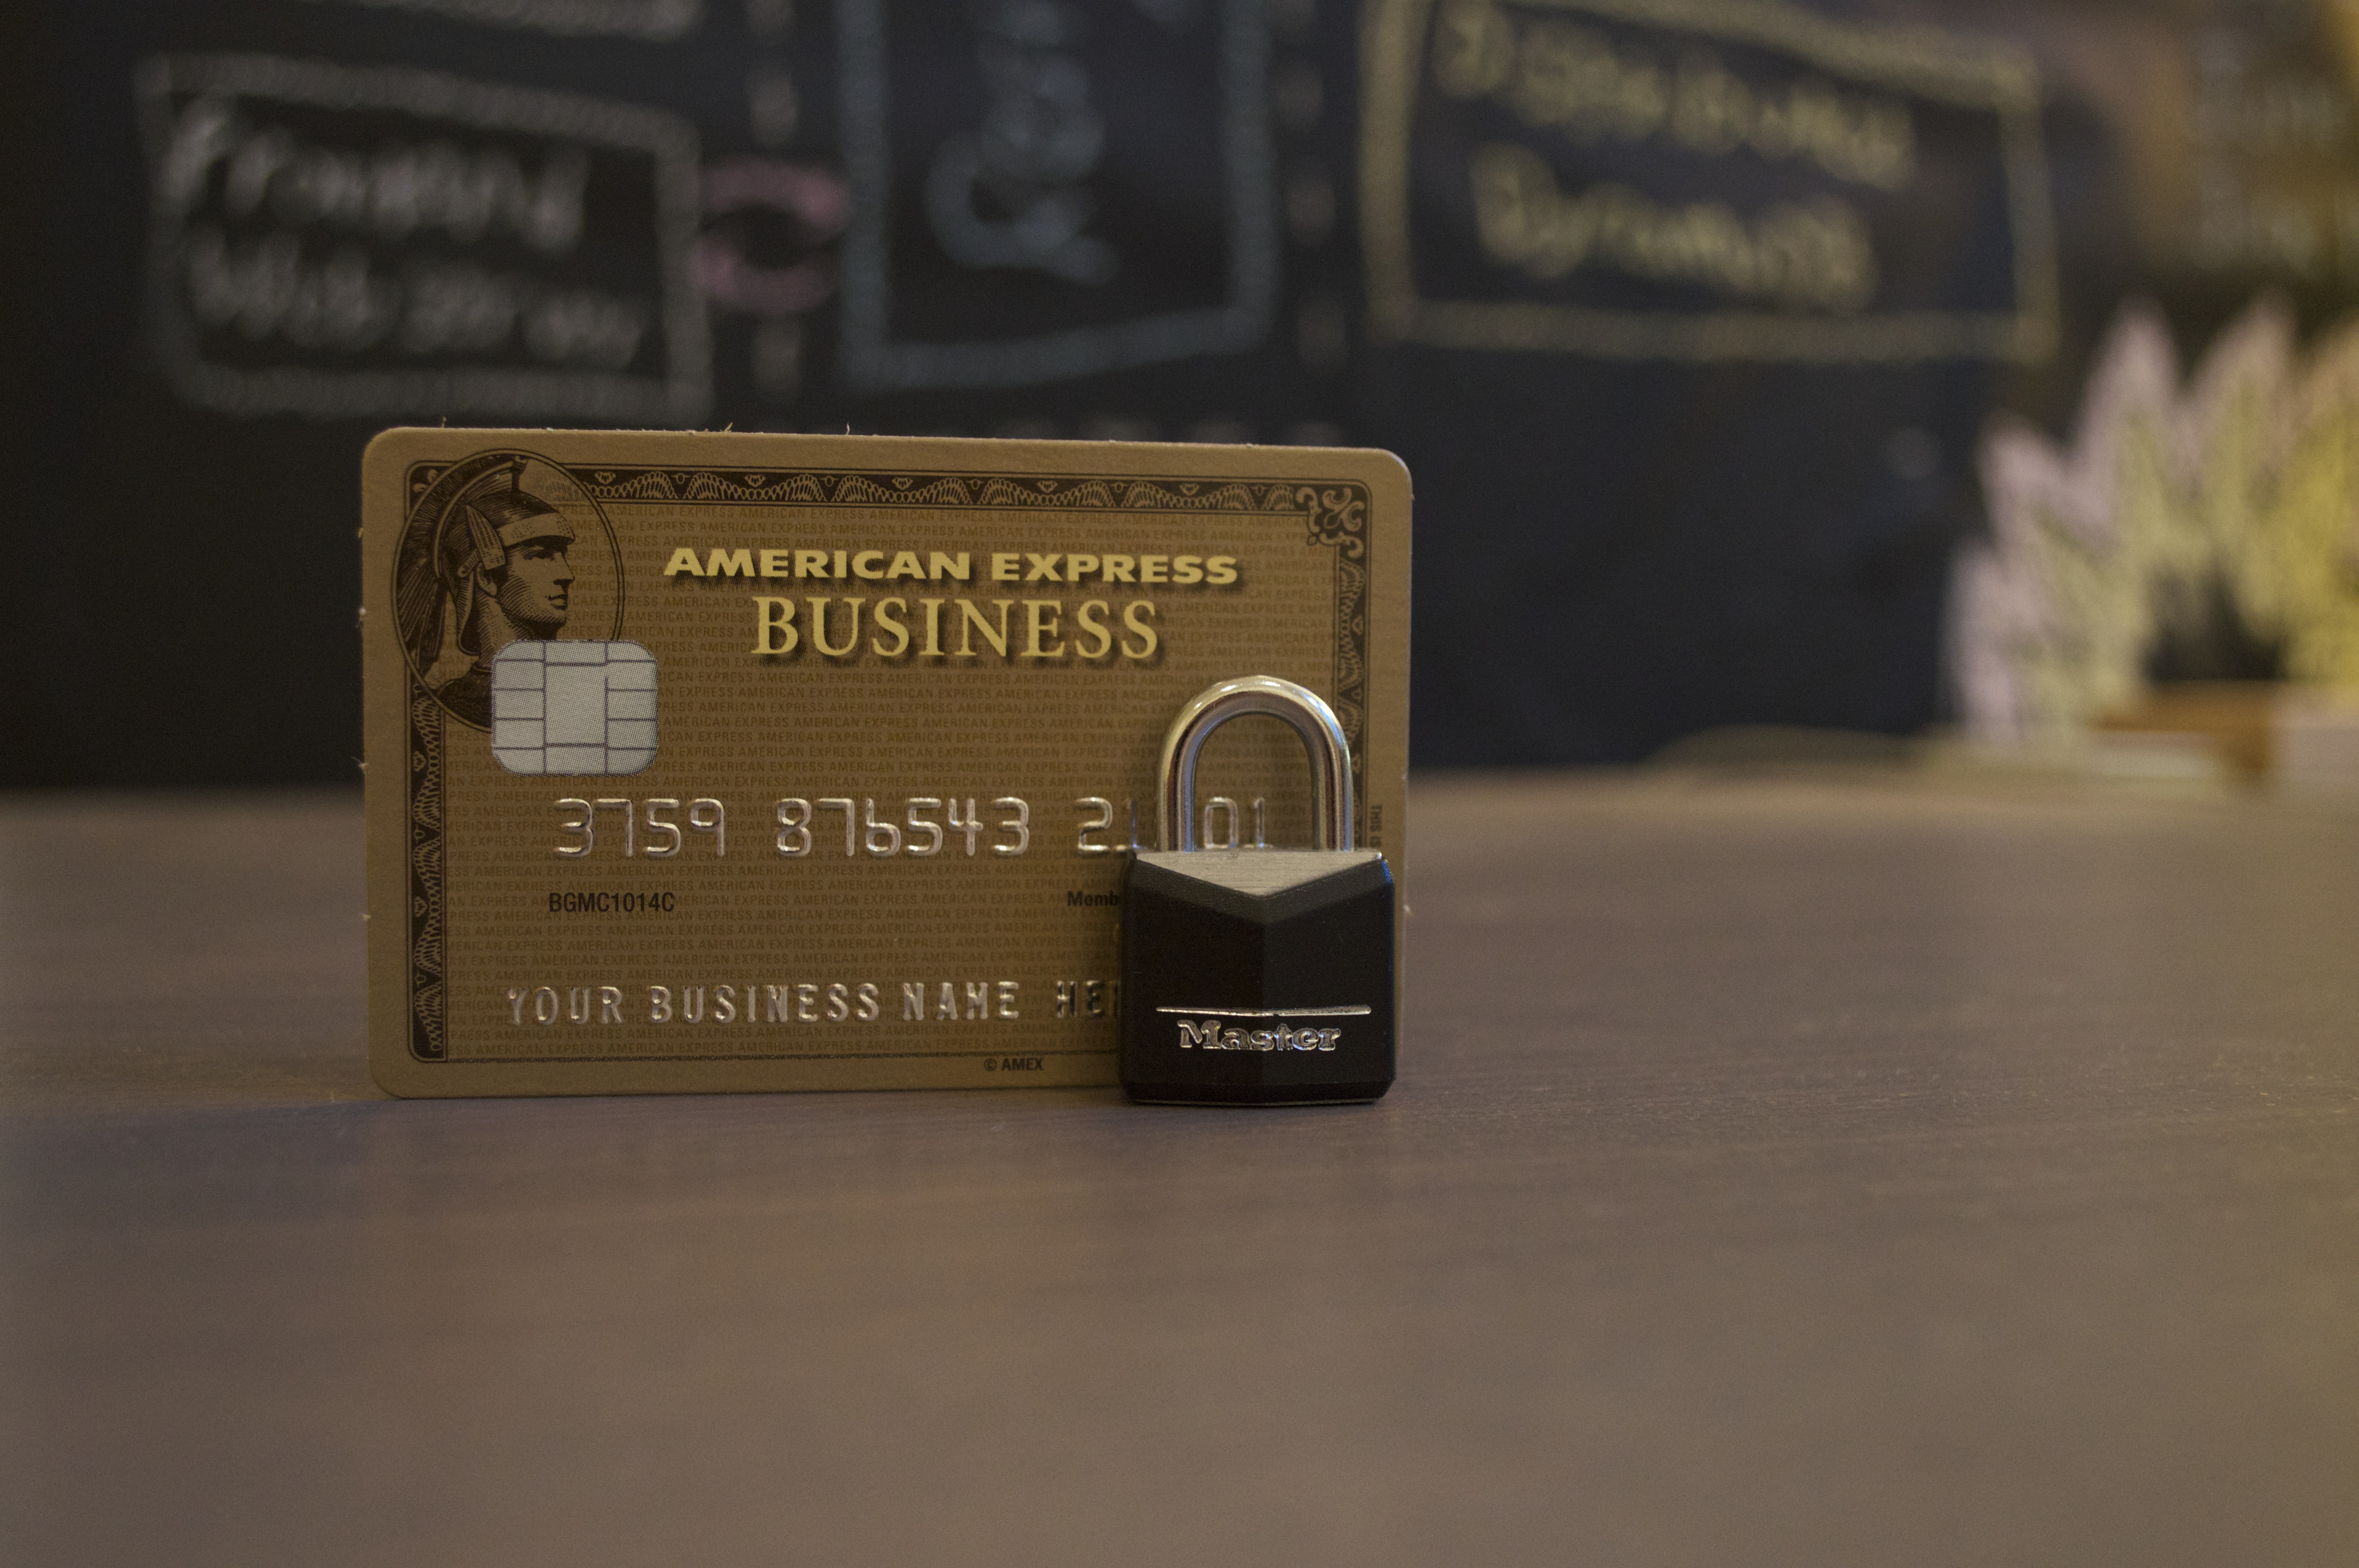 A lock in front of an American Express Business credit card.